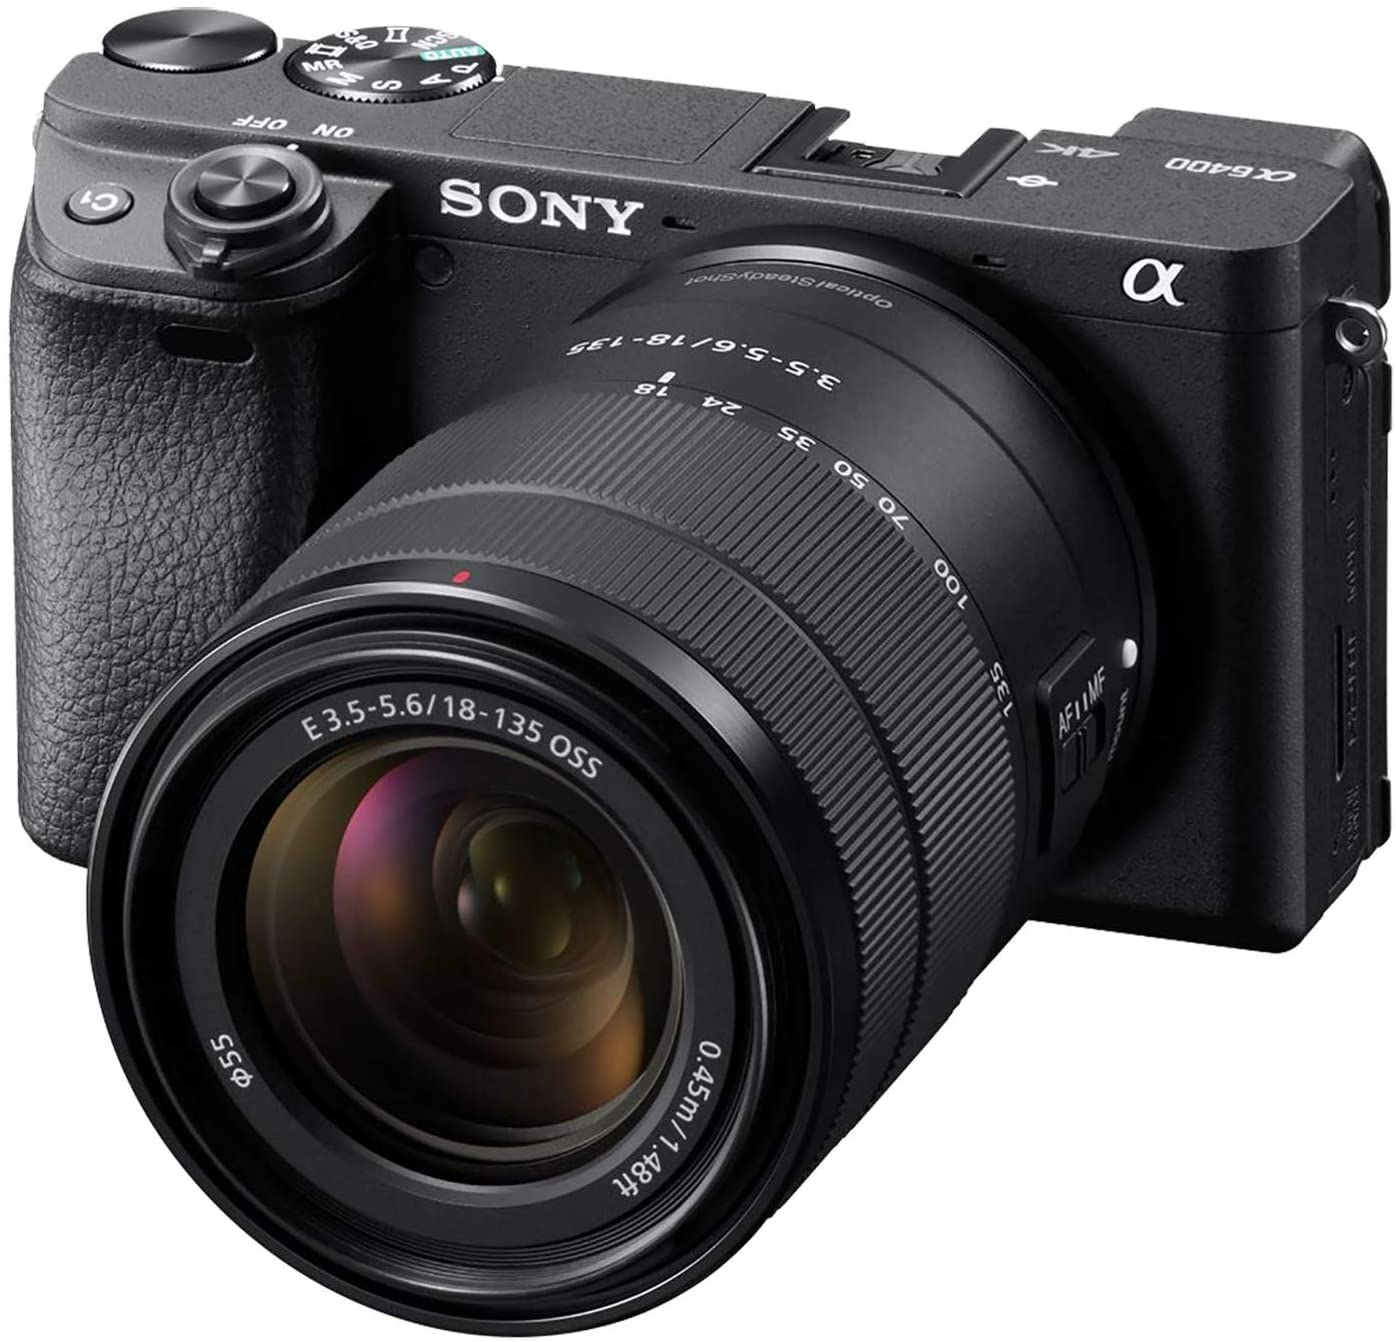 The Best Travel Photography Gear: What's In My Camera Bag | Sony Alpha a6400 Mirrorless Camera